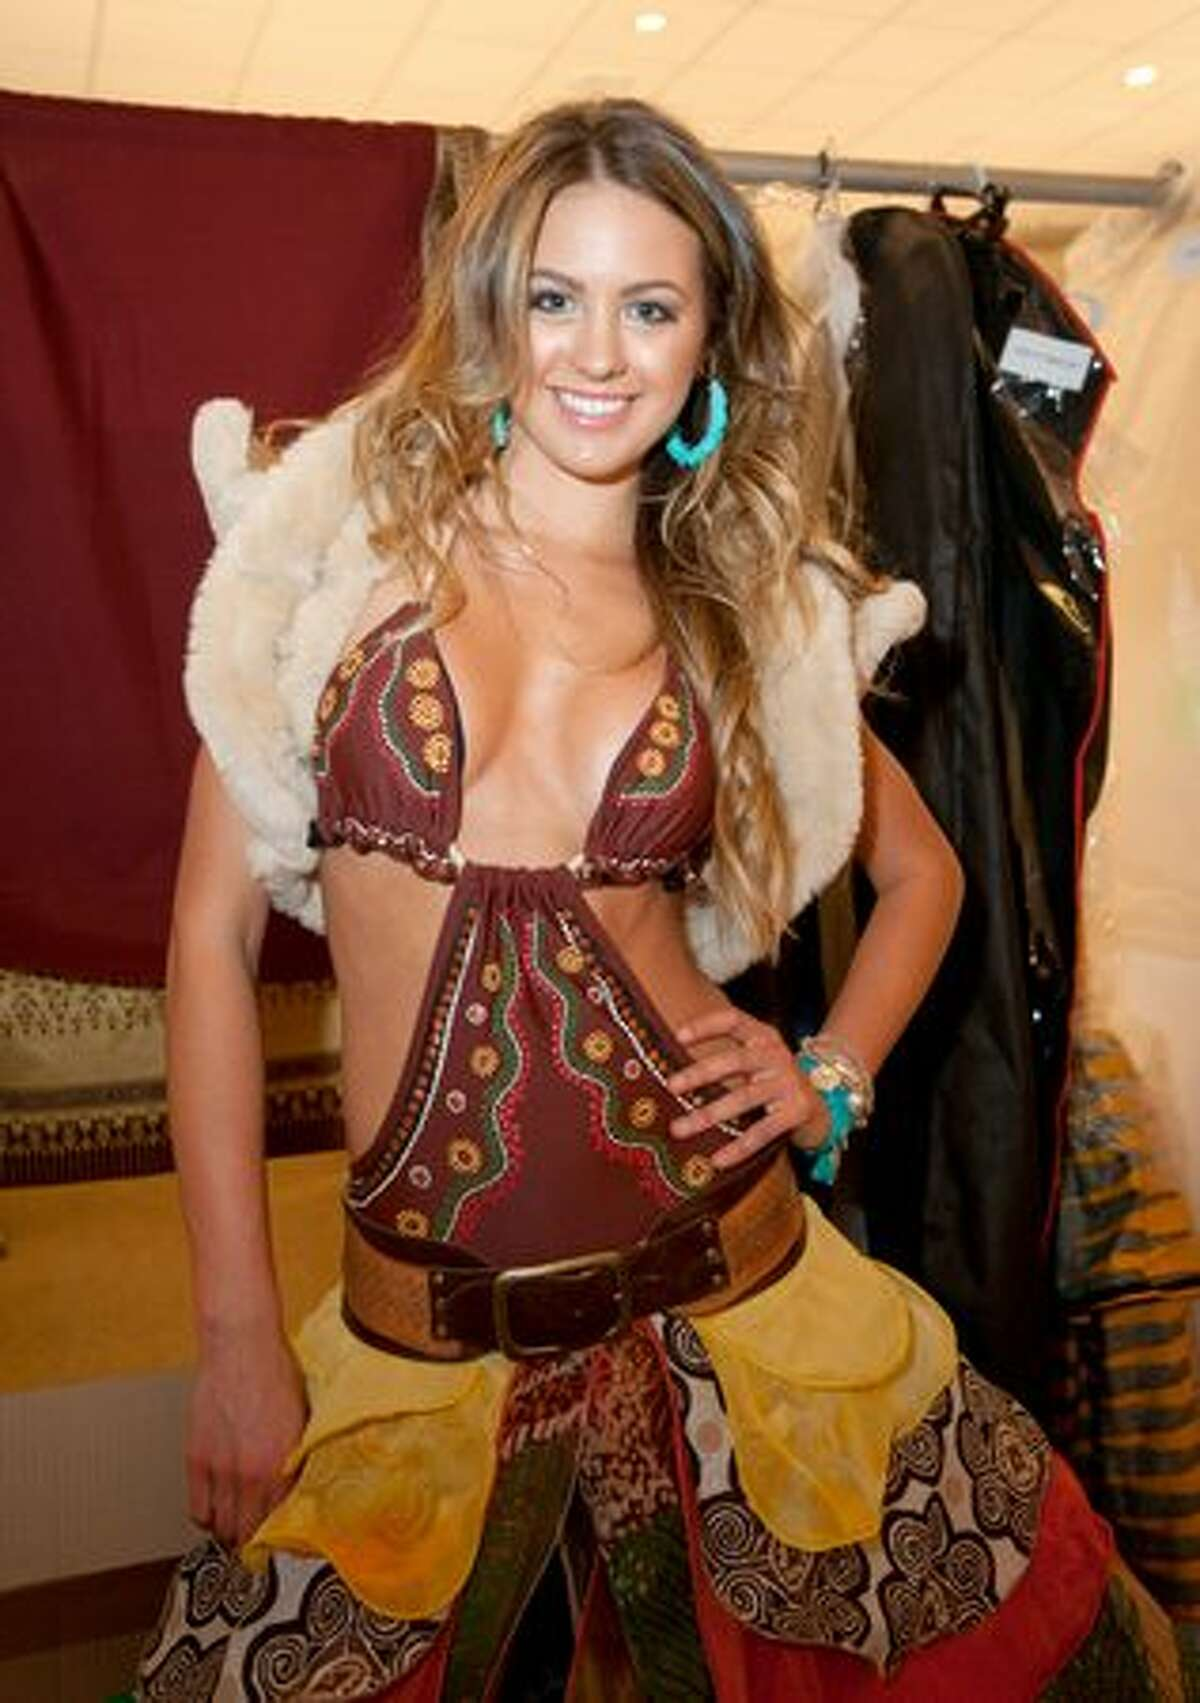 Jesinta Campbell, Miss Australia 2010, offers a closer look at her controversial costume.